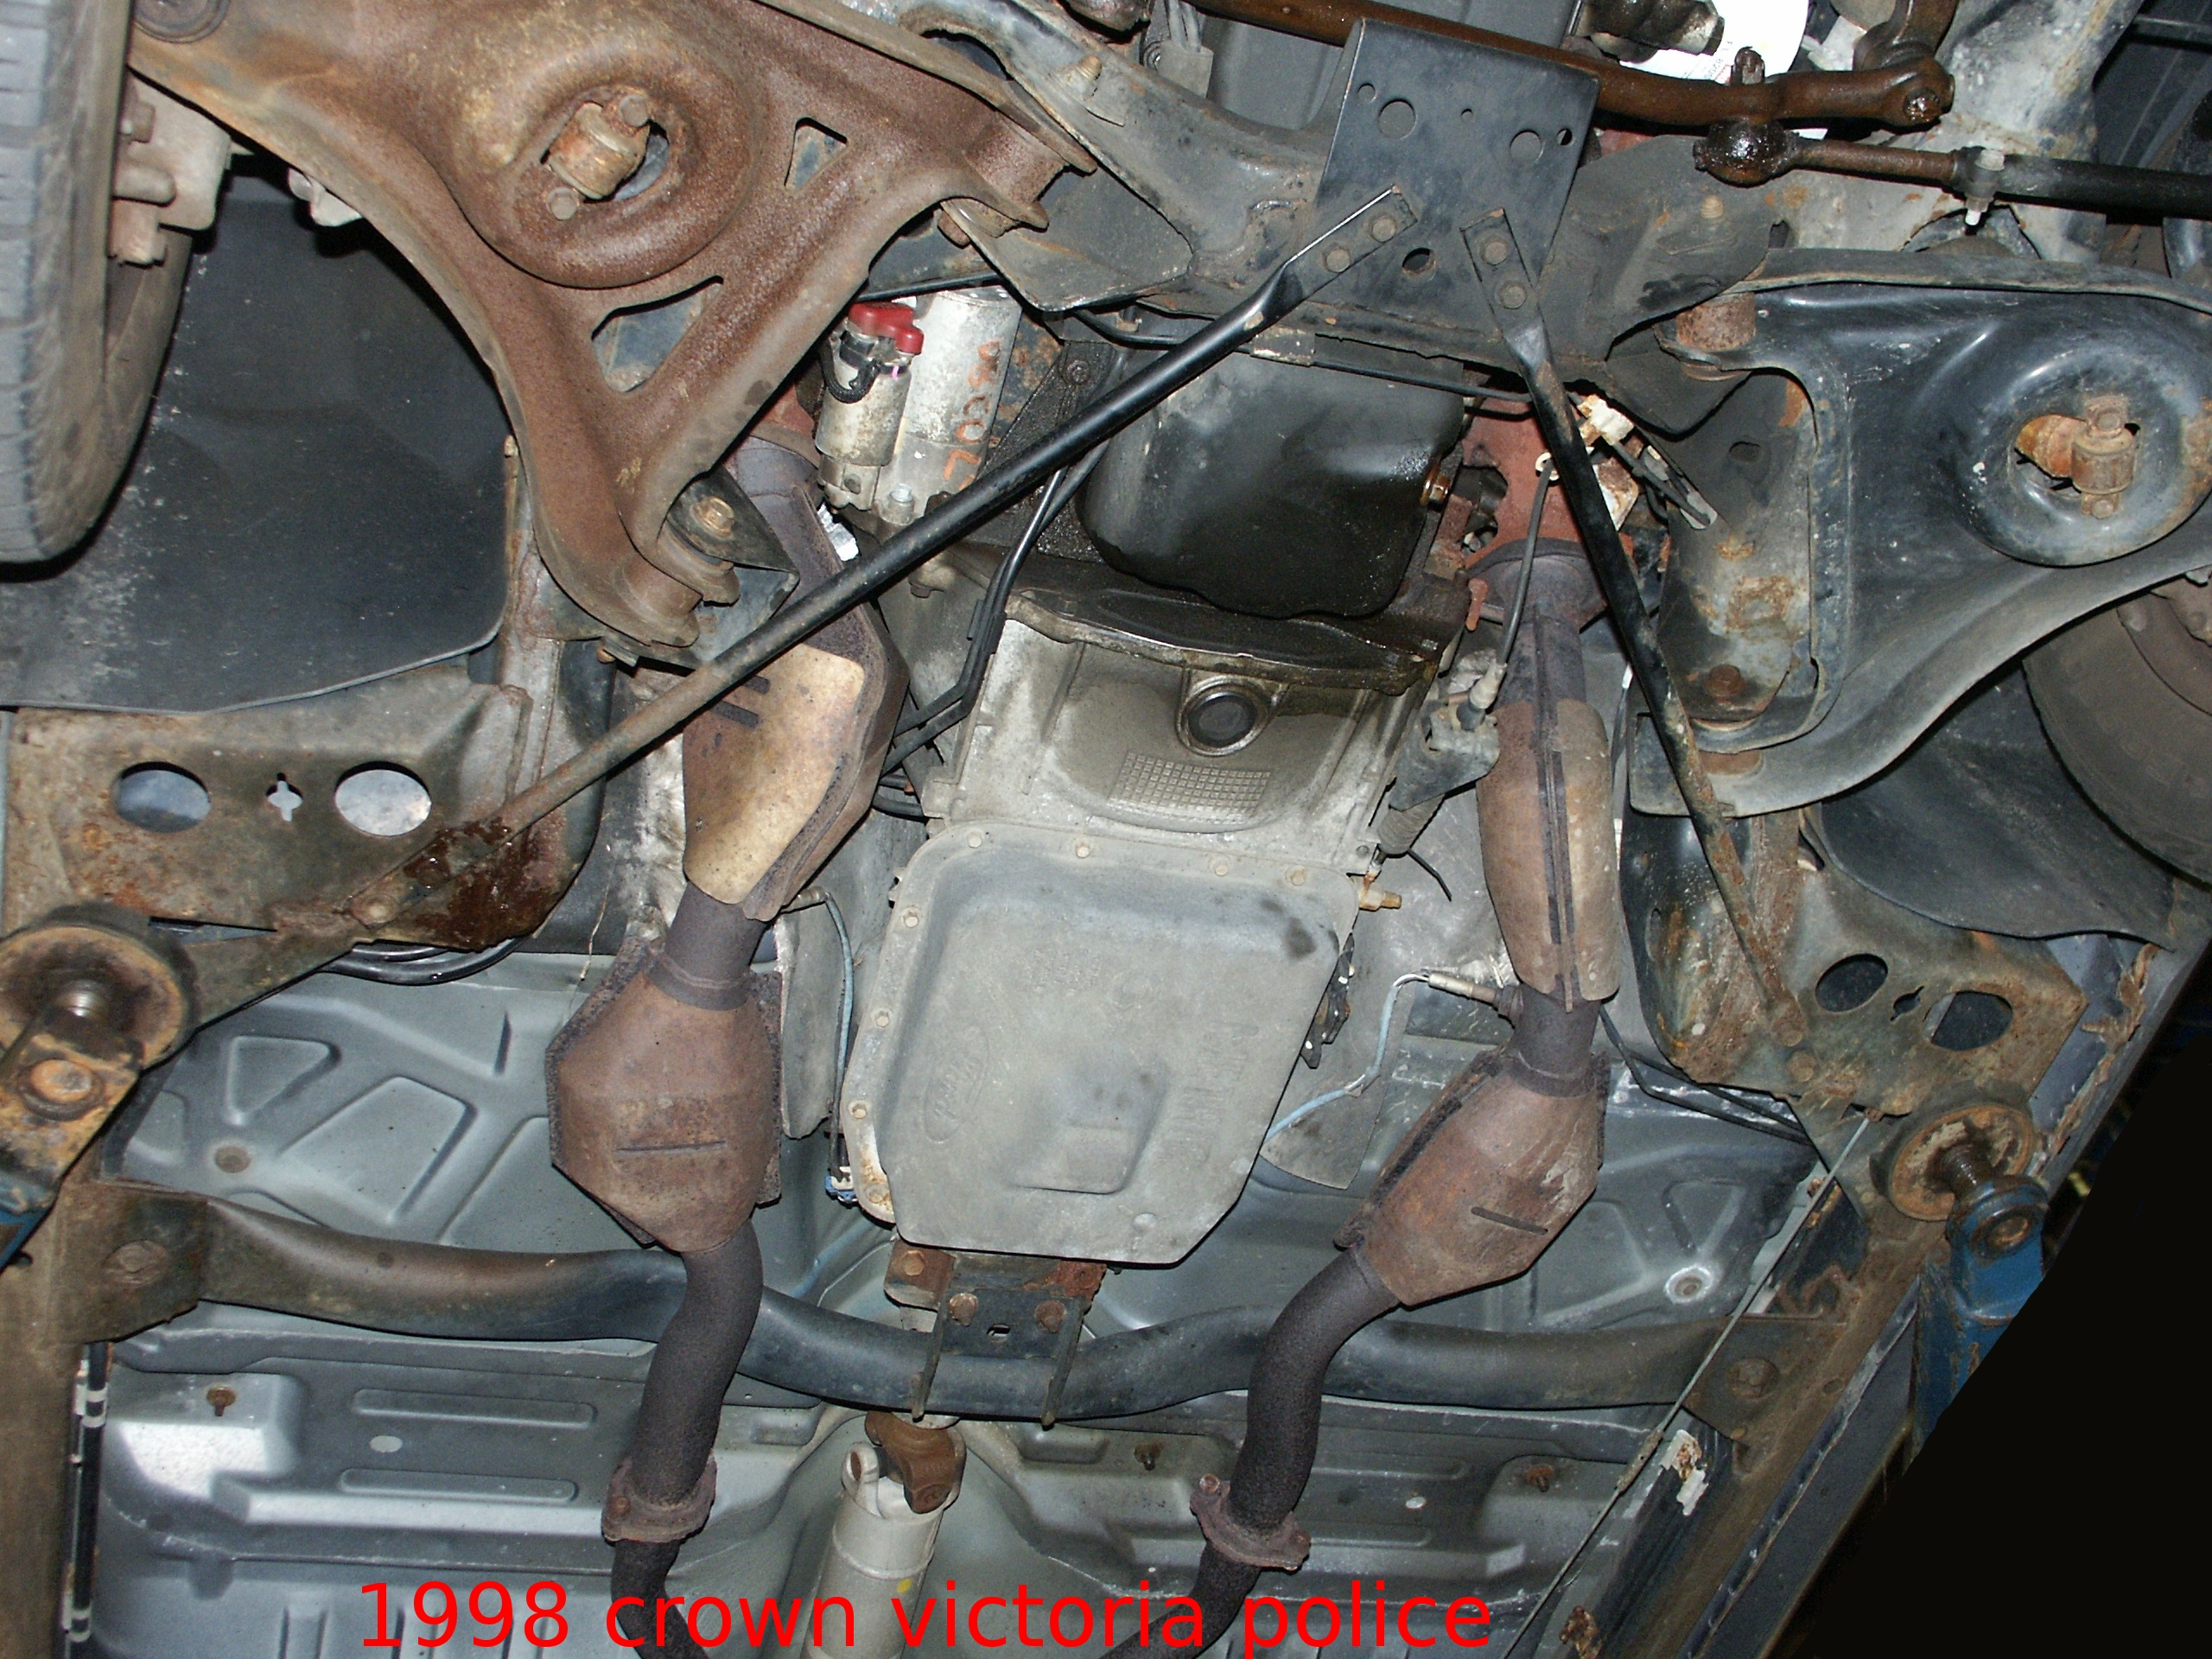 2008 4runner Engine Diagram Wiring Library 08 Toyota 1986 Starter Images Gallery Ford Crown Victoria Undercar Picture Scrapbook